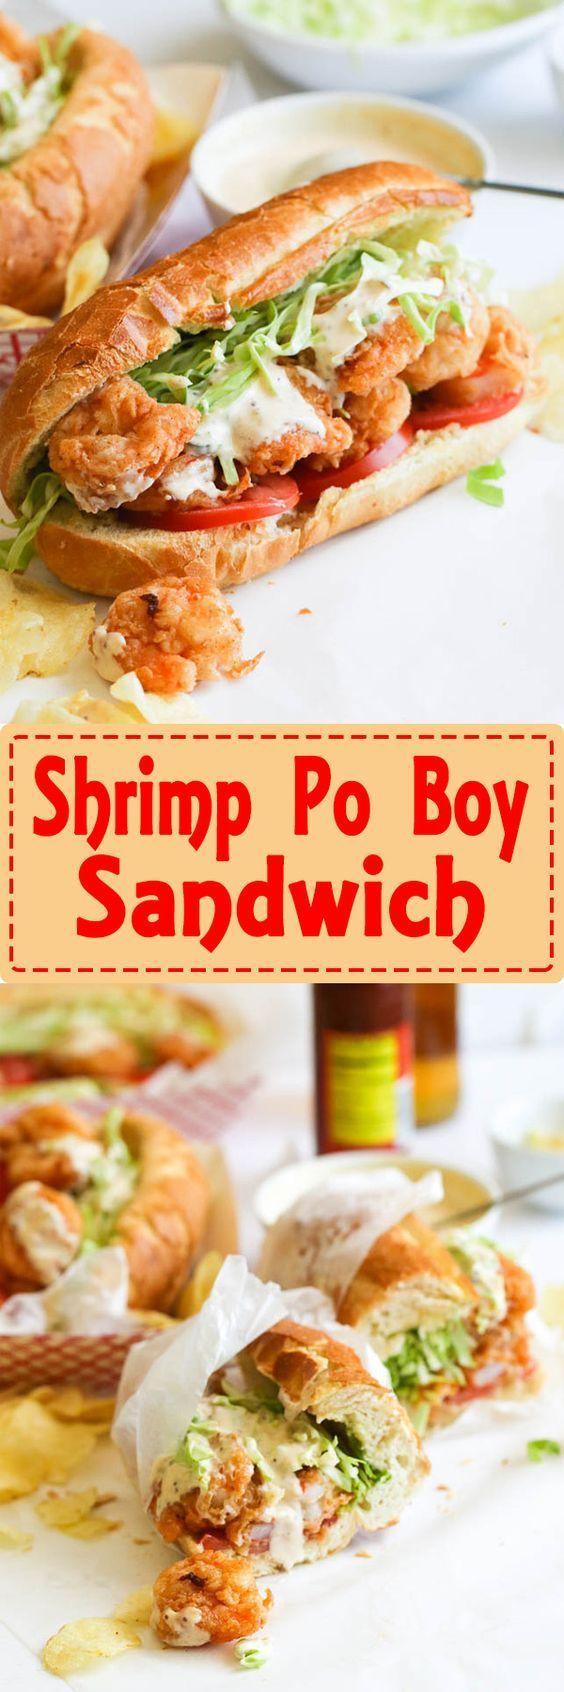 Shrimp po' boy sandwich- Crispy Crunchy shrimp piled mile high on buttered toasted French roll, stuffed with crunchy cabbage, Fresh tomatoes - drizzled with a lip smacking remoulade sauce . Crazy Delicious!!!!